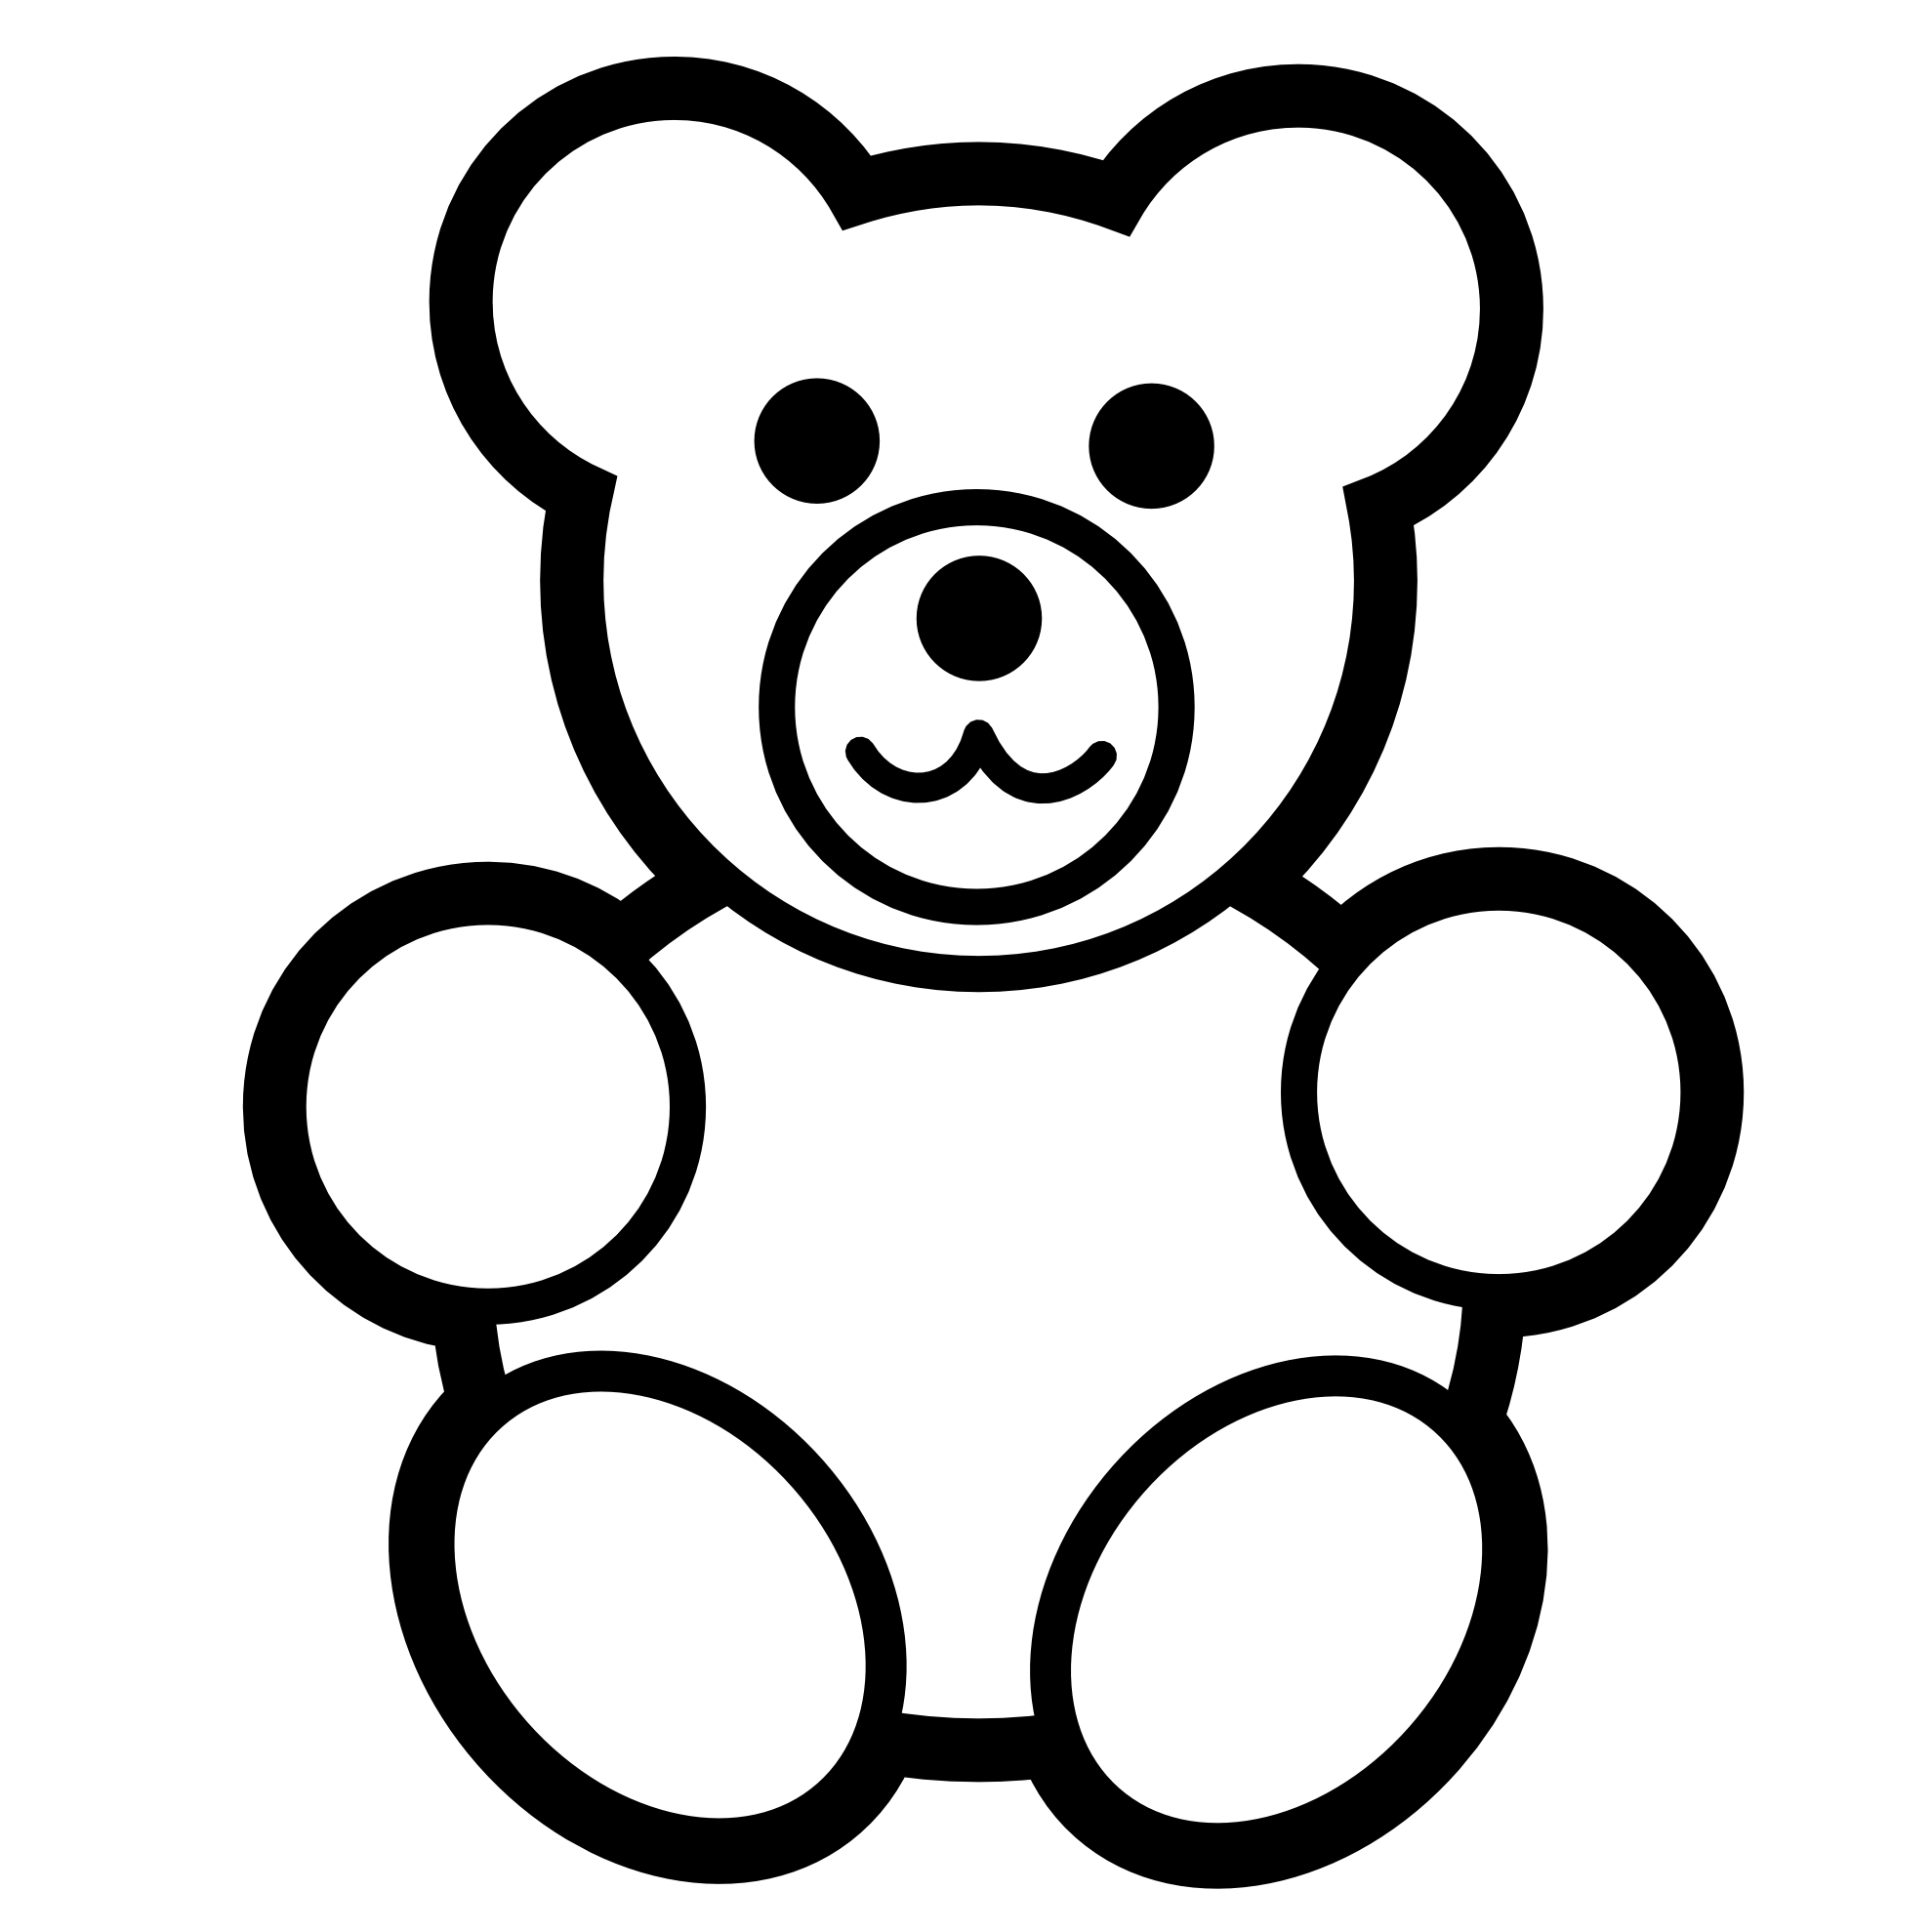 Bear Clipart Black And White | Clipart Panda - Free Clipart Images